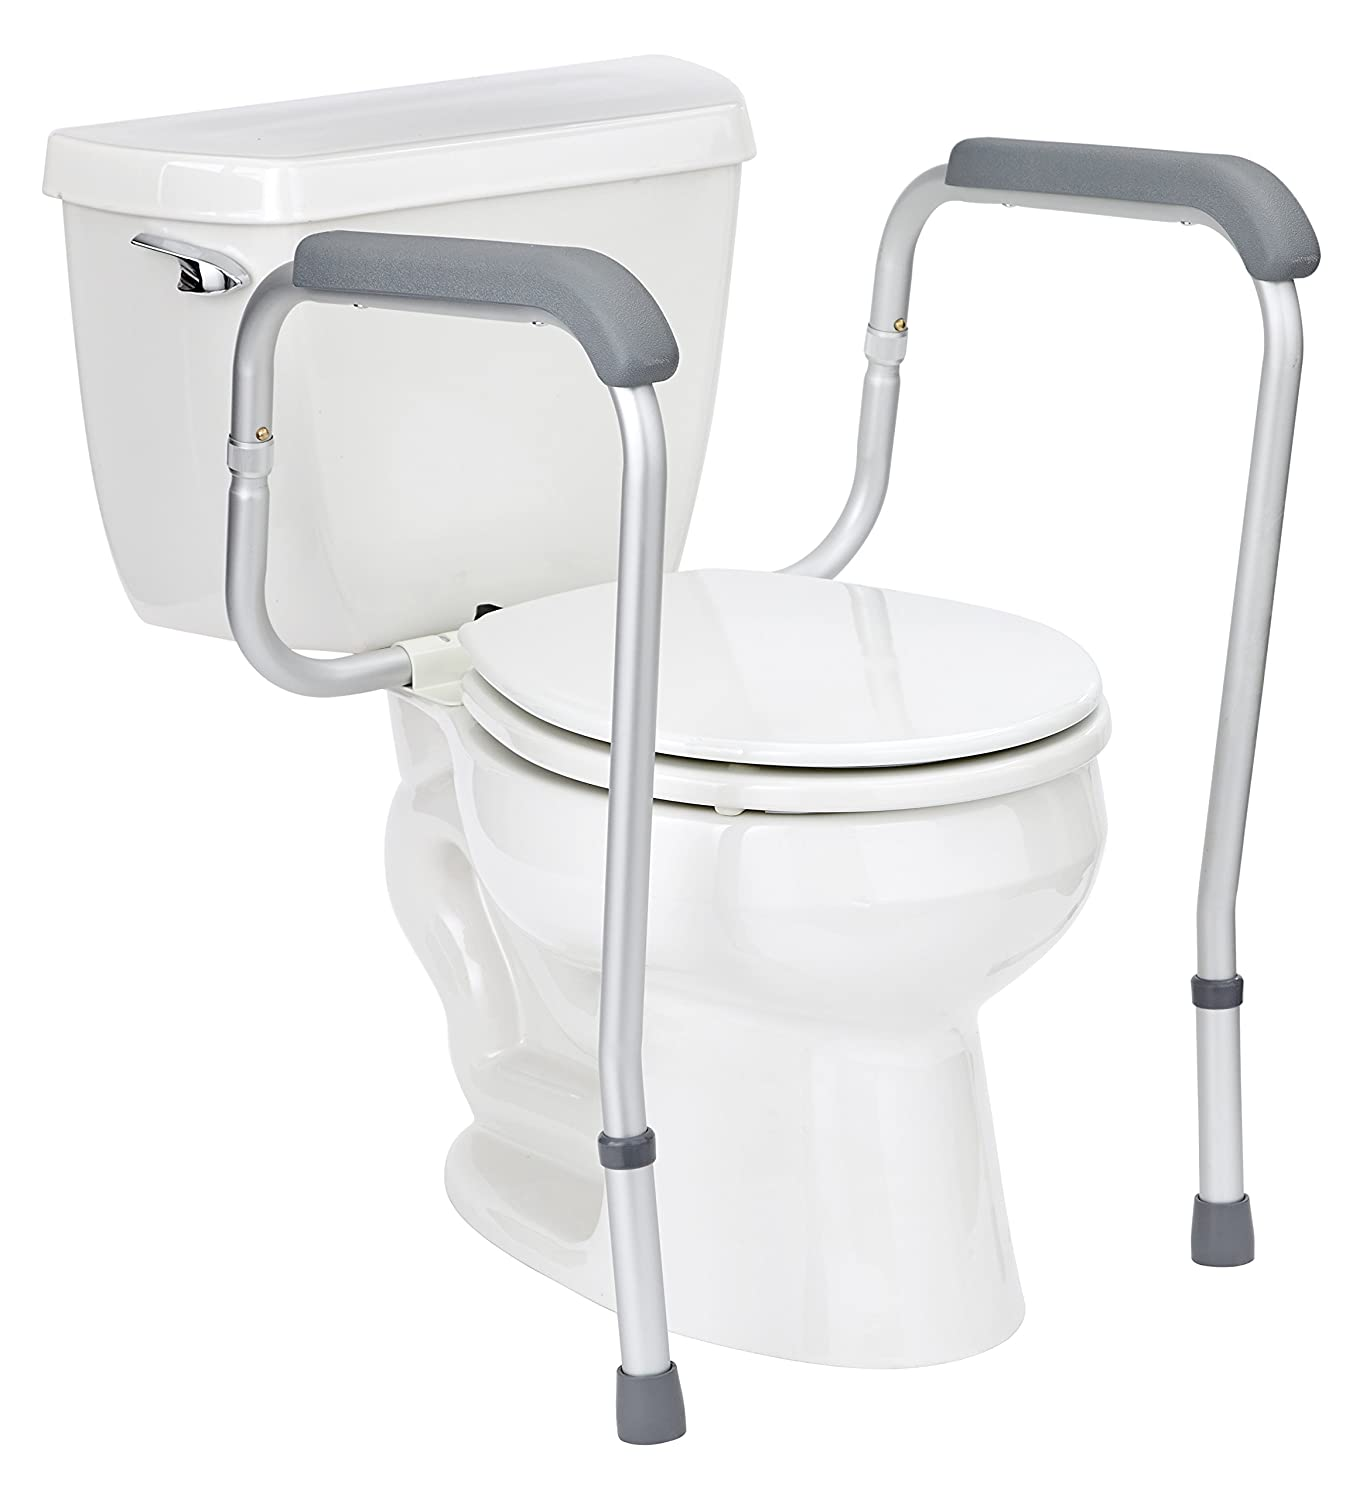 Top 10 Best Toilet Safety Frames And Rails Reviews 2016 On